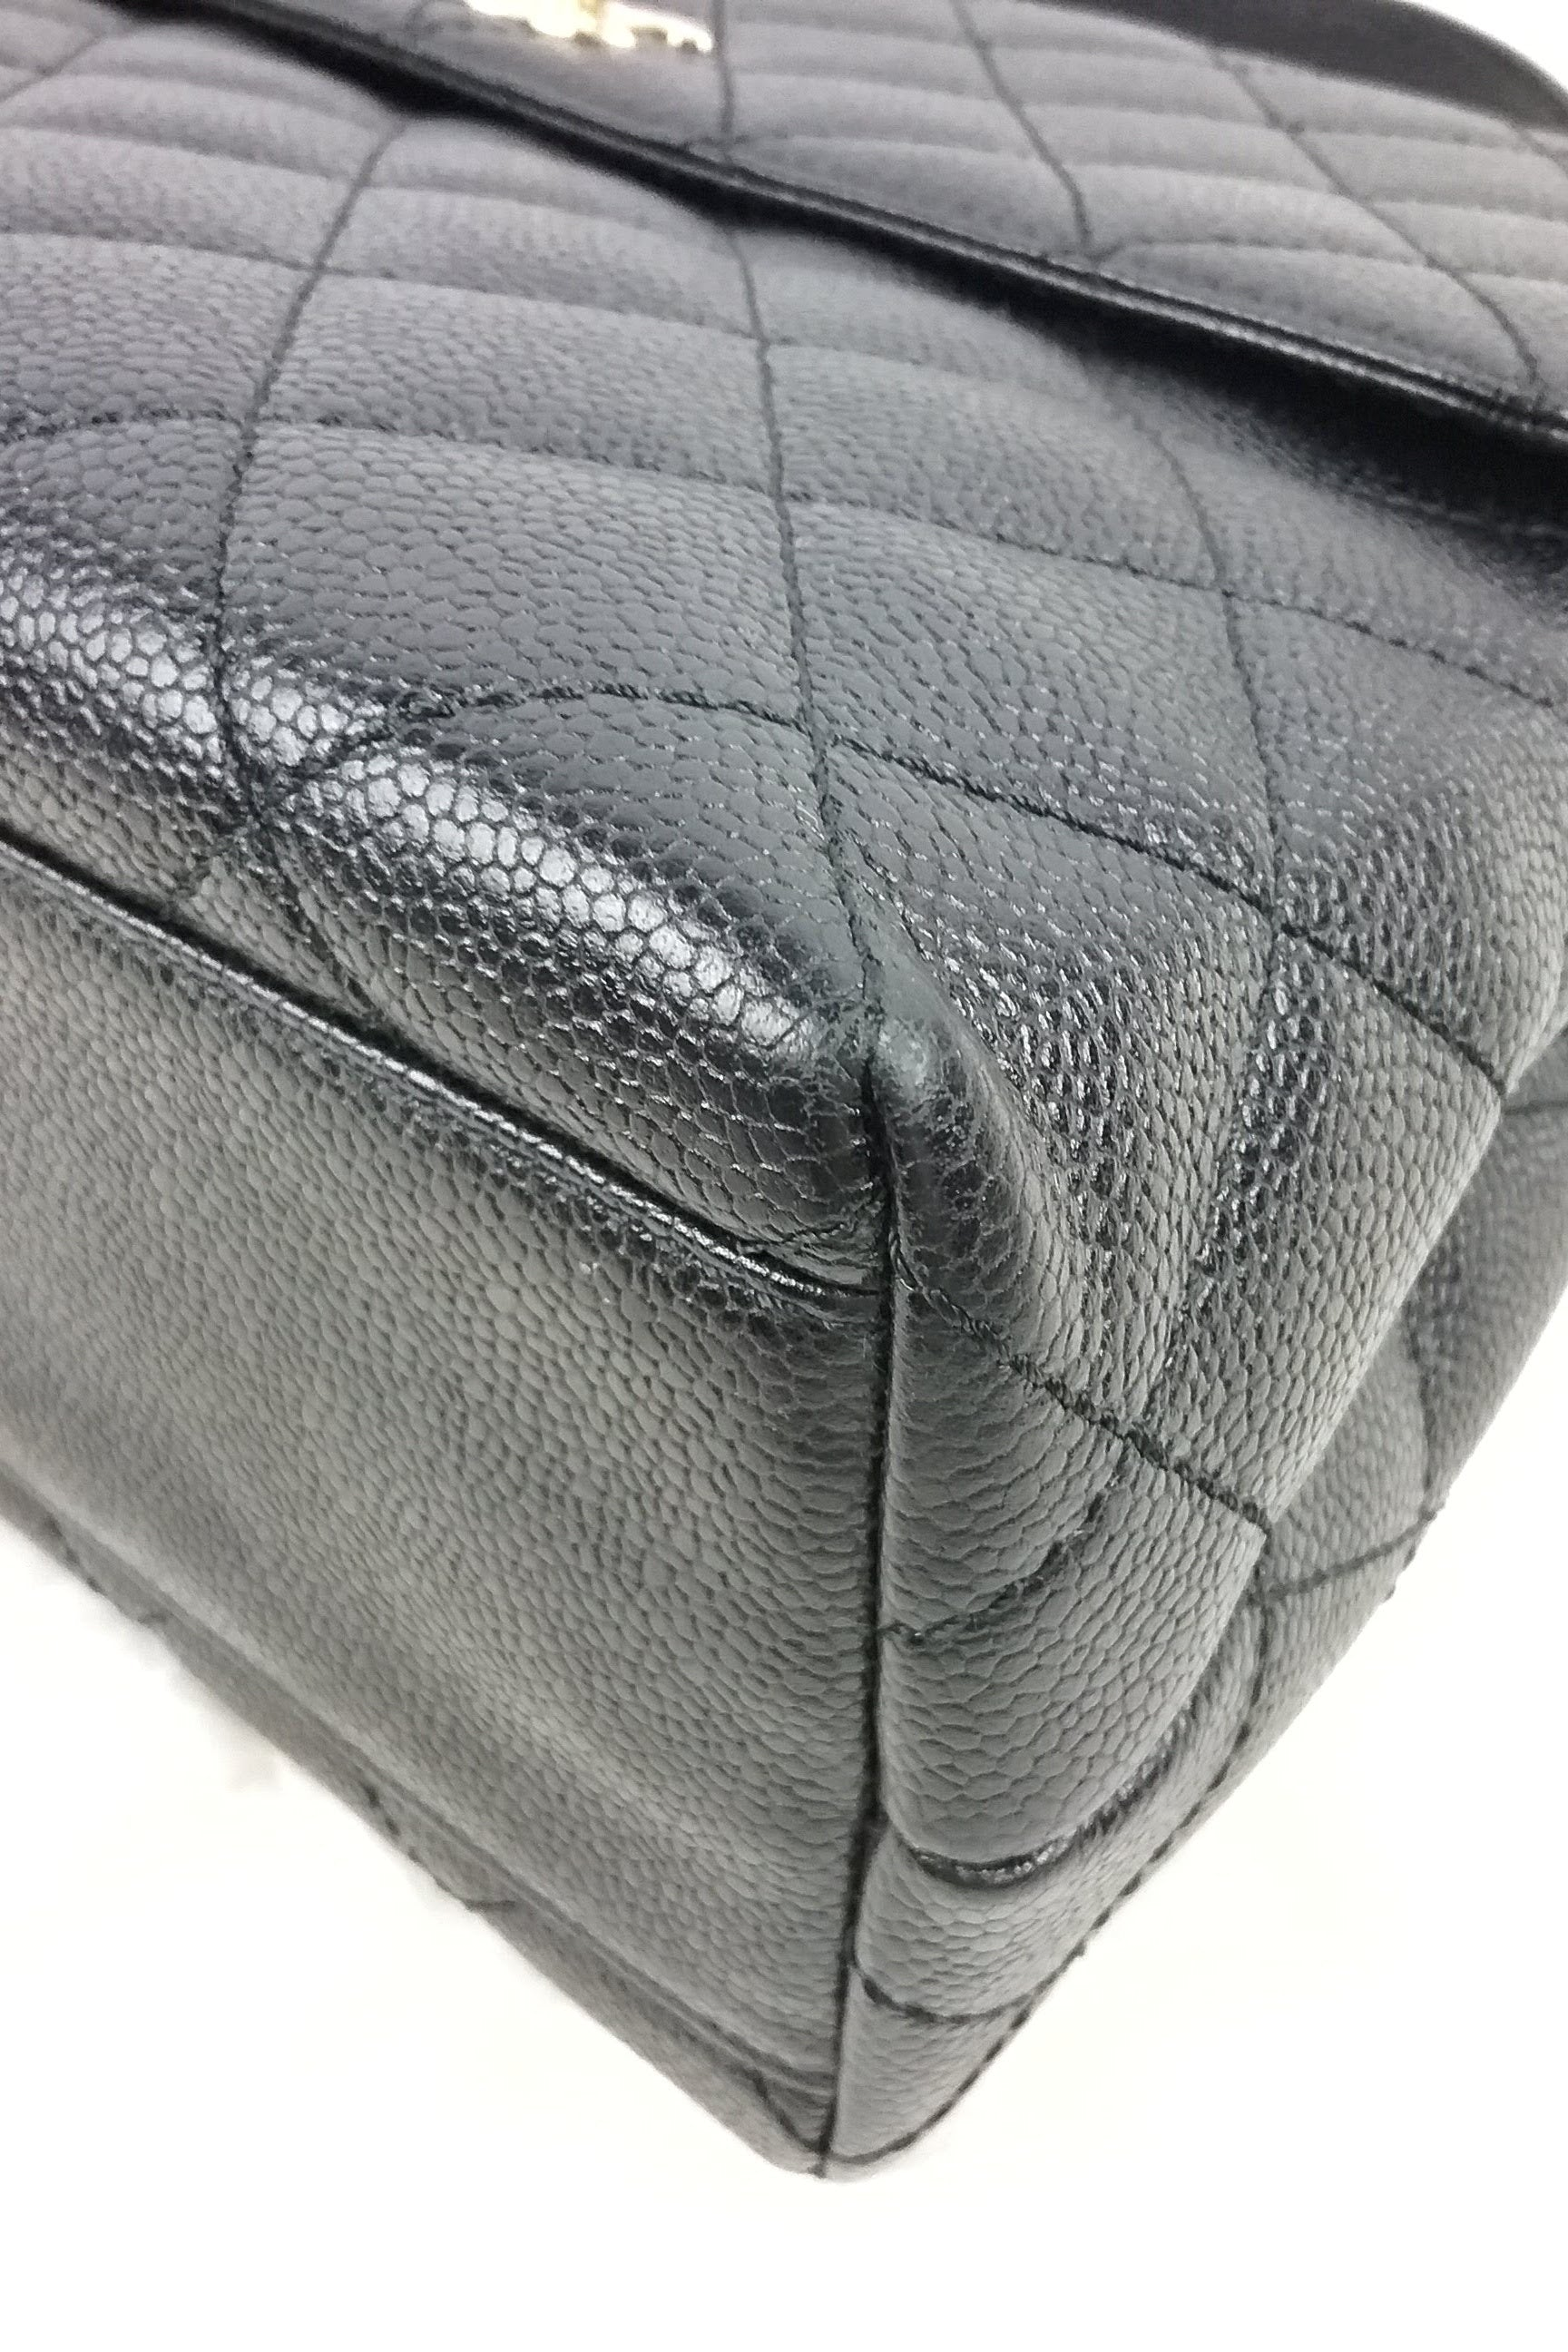 Black Caviar Quilted Vintage Kelly Tote SHW